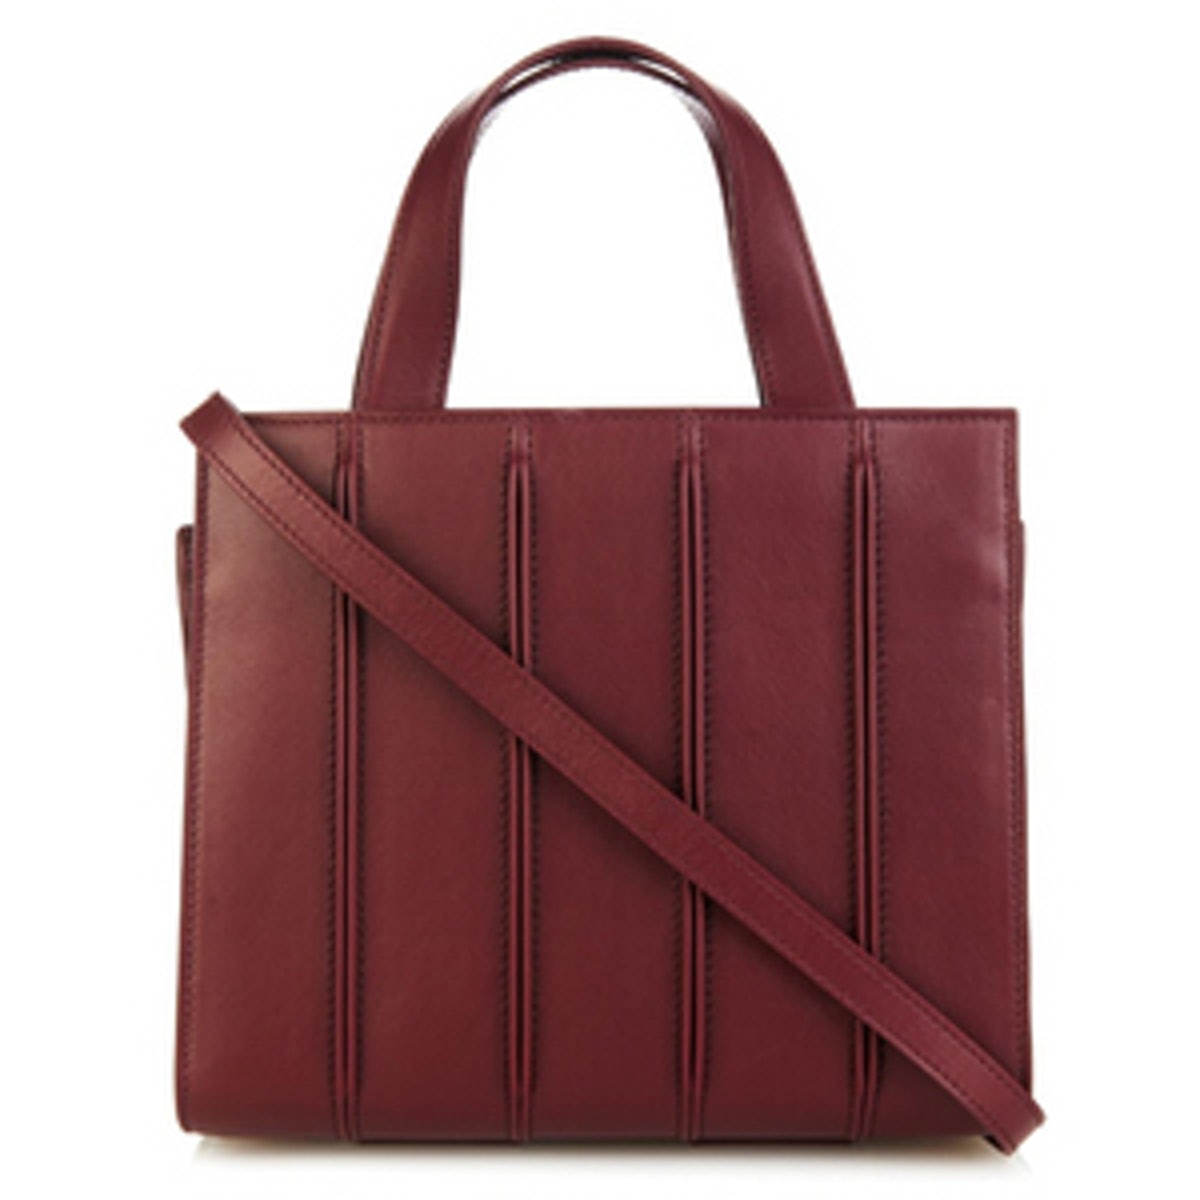 Whitney Small Tote